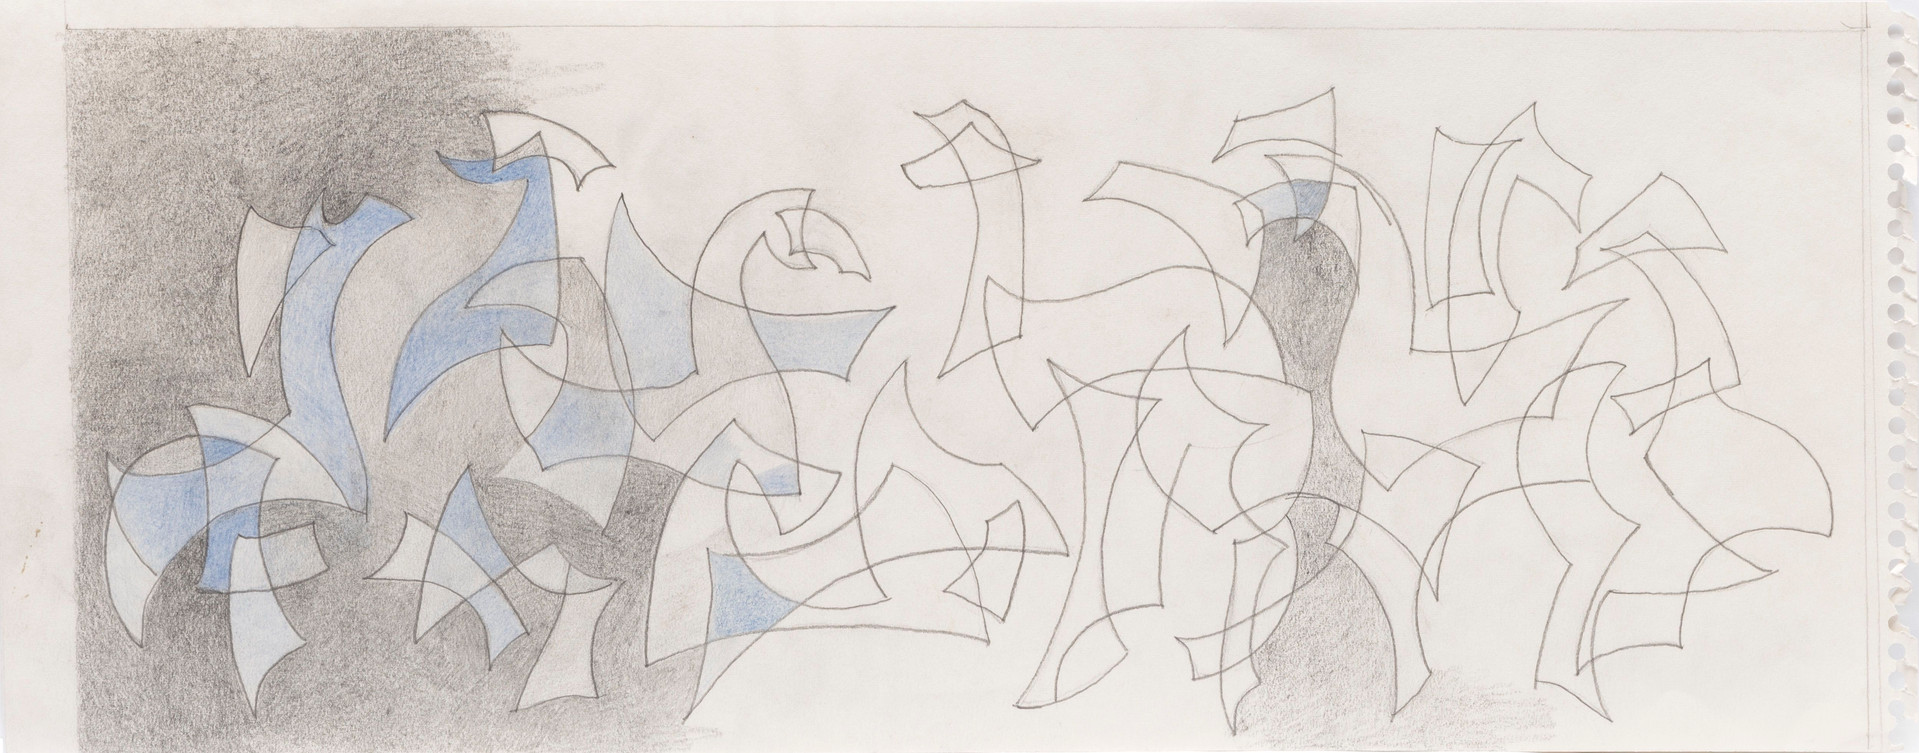 Untitled sketch - 1 out of 2 sketches of abstract geometric shapes (partially colored)